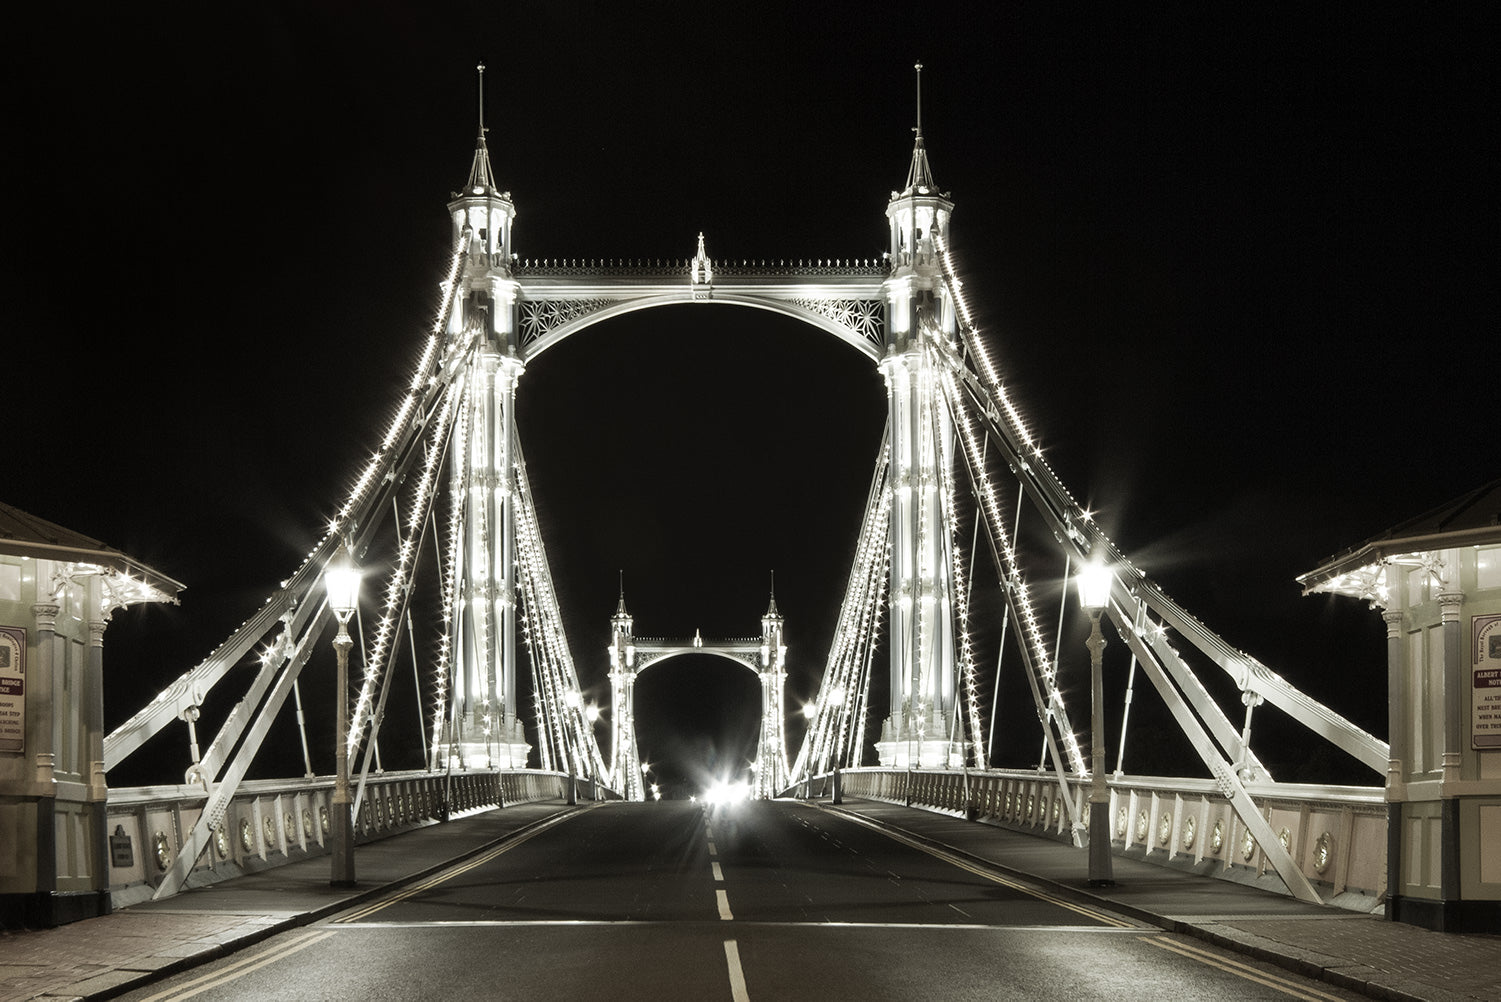 Black and white view of the fairy tale like Victorian Albert Bridge in London, lit up at night by 4000 LED lights.